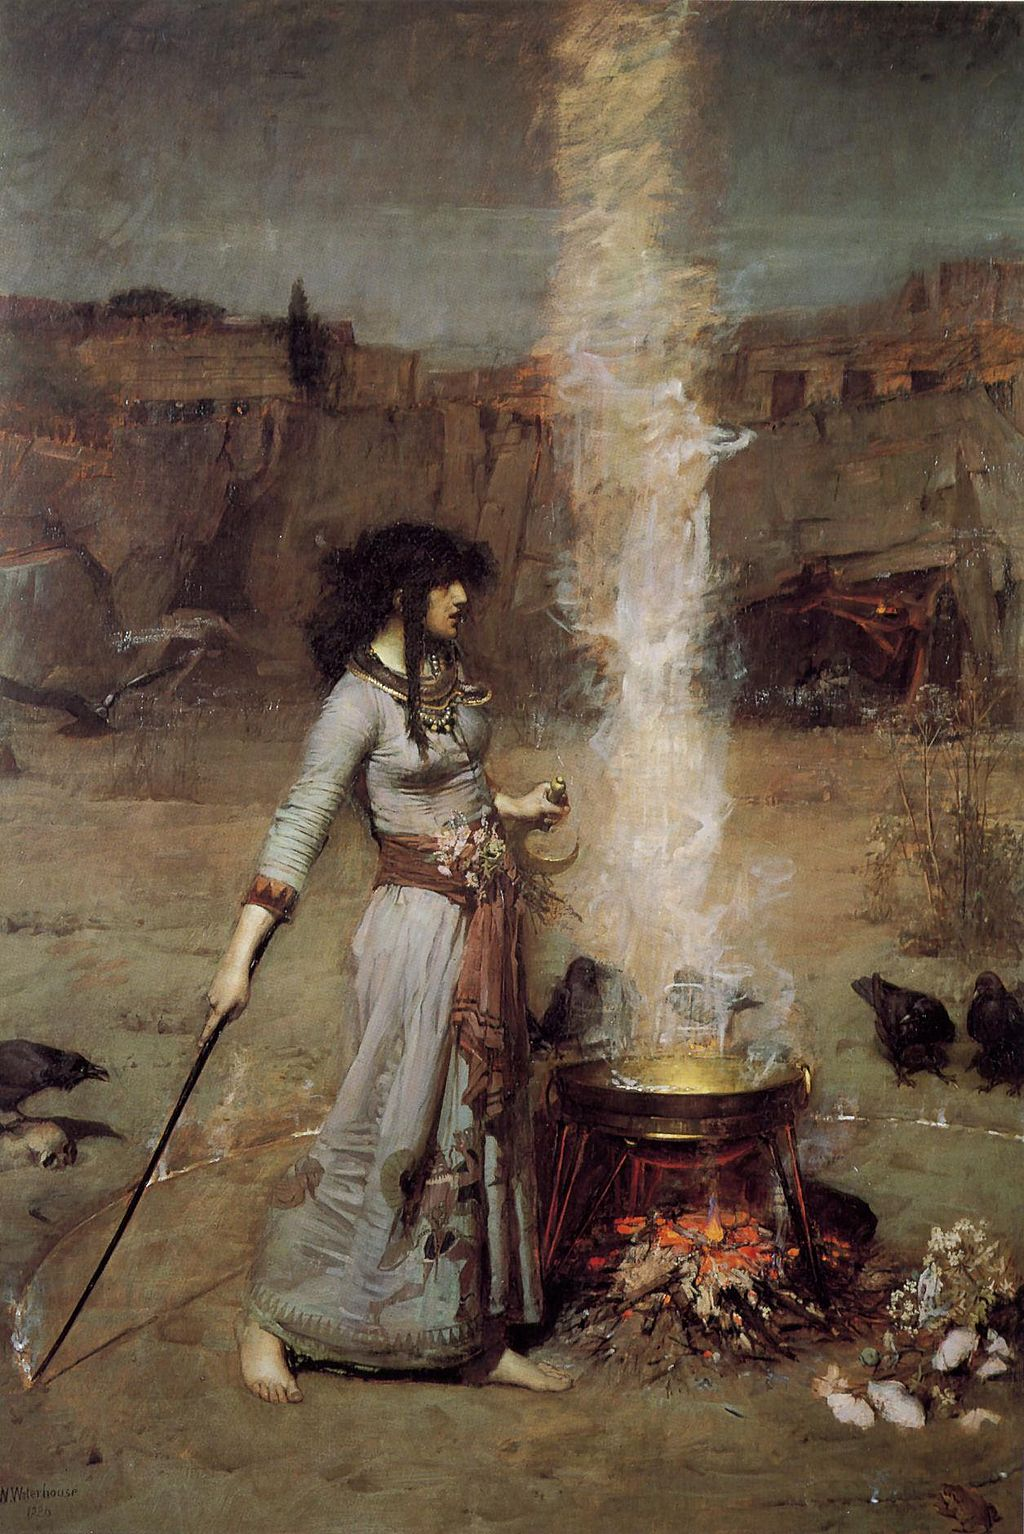 The Magic Circle, John William Waterhouse [Public domain], via Wikimedia Commons